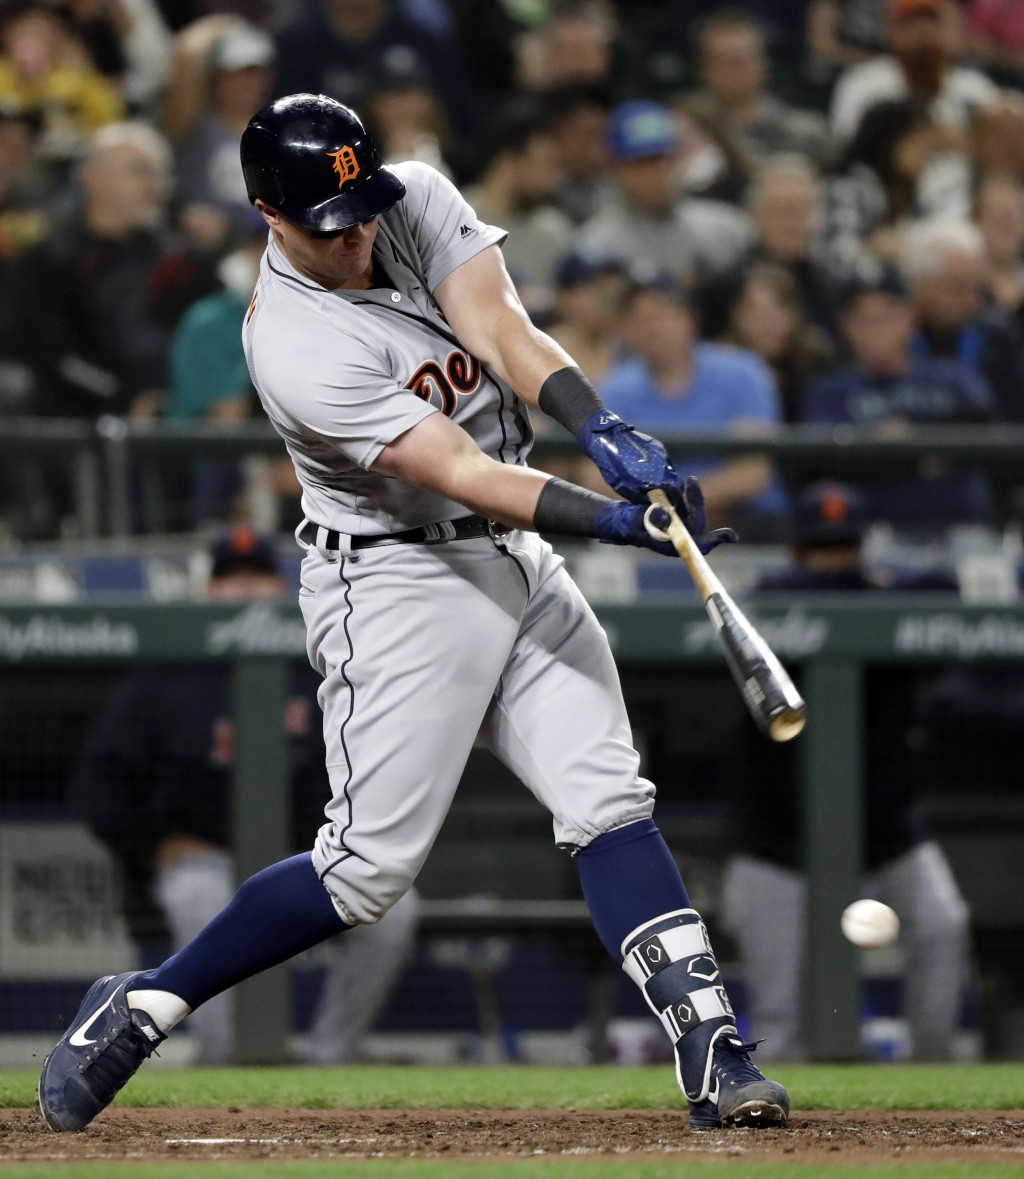 Detroit Tigers' James McCann hits a ground ball against the Seattle Mariners during the sixth inning of a baseball game Thursday, May 17, 2018, in Sea